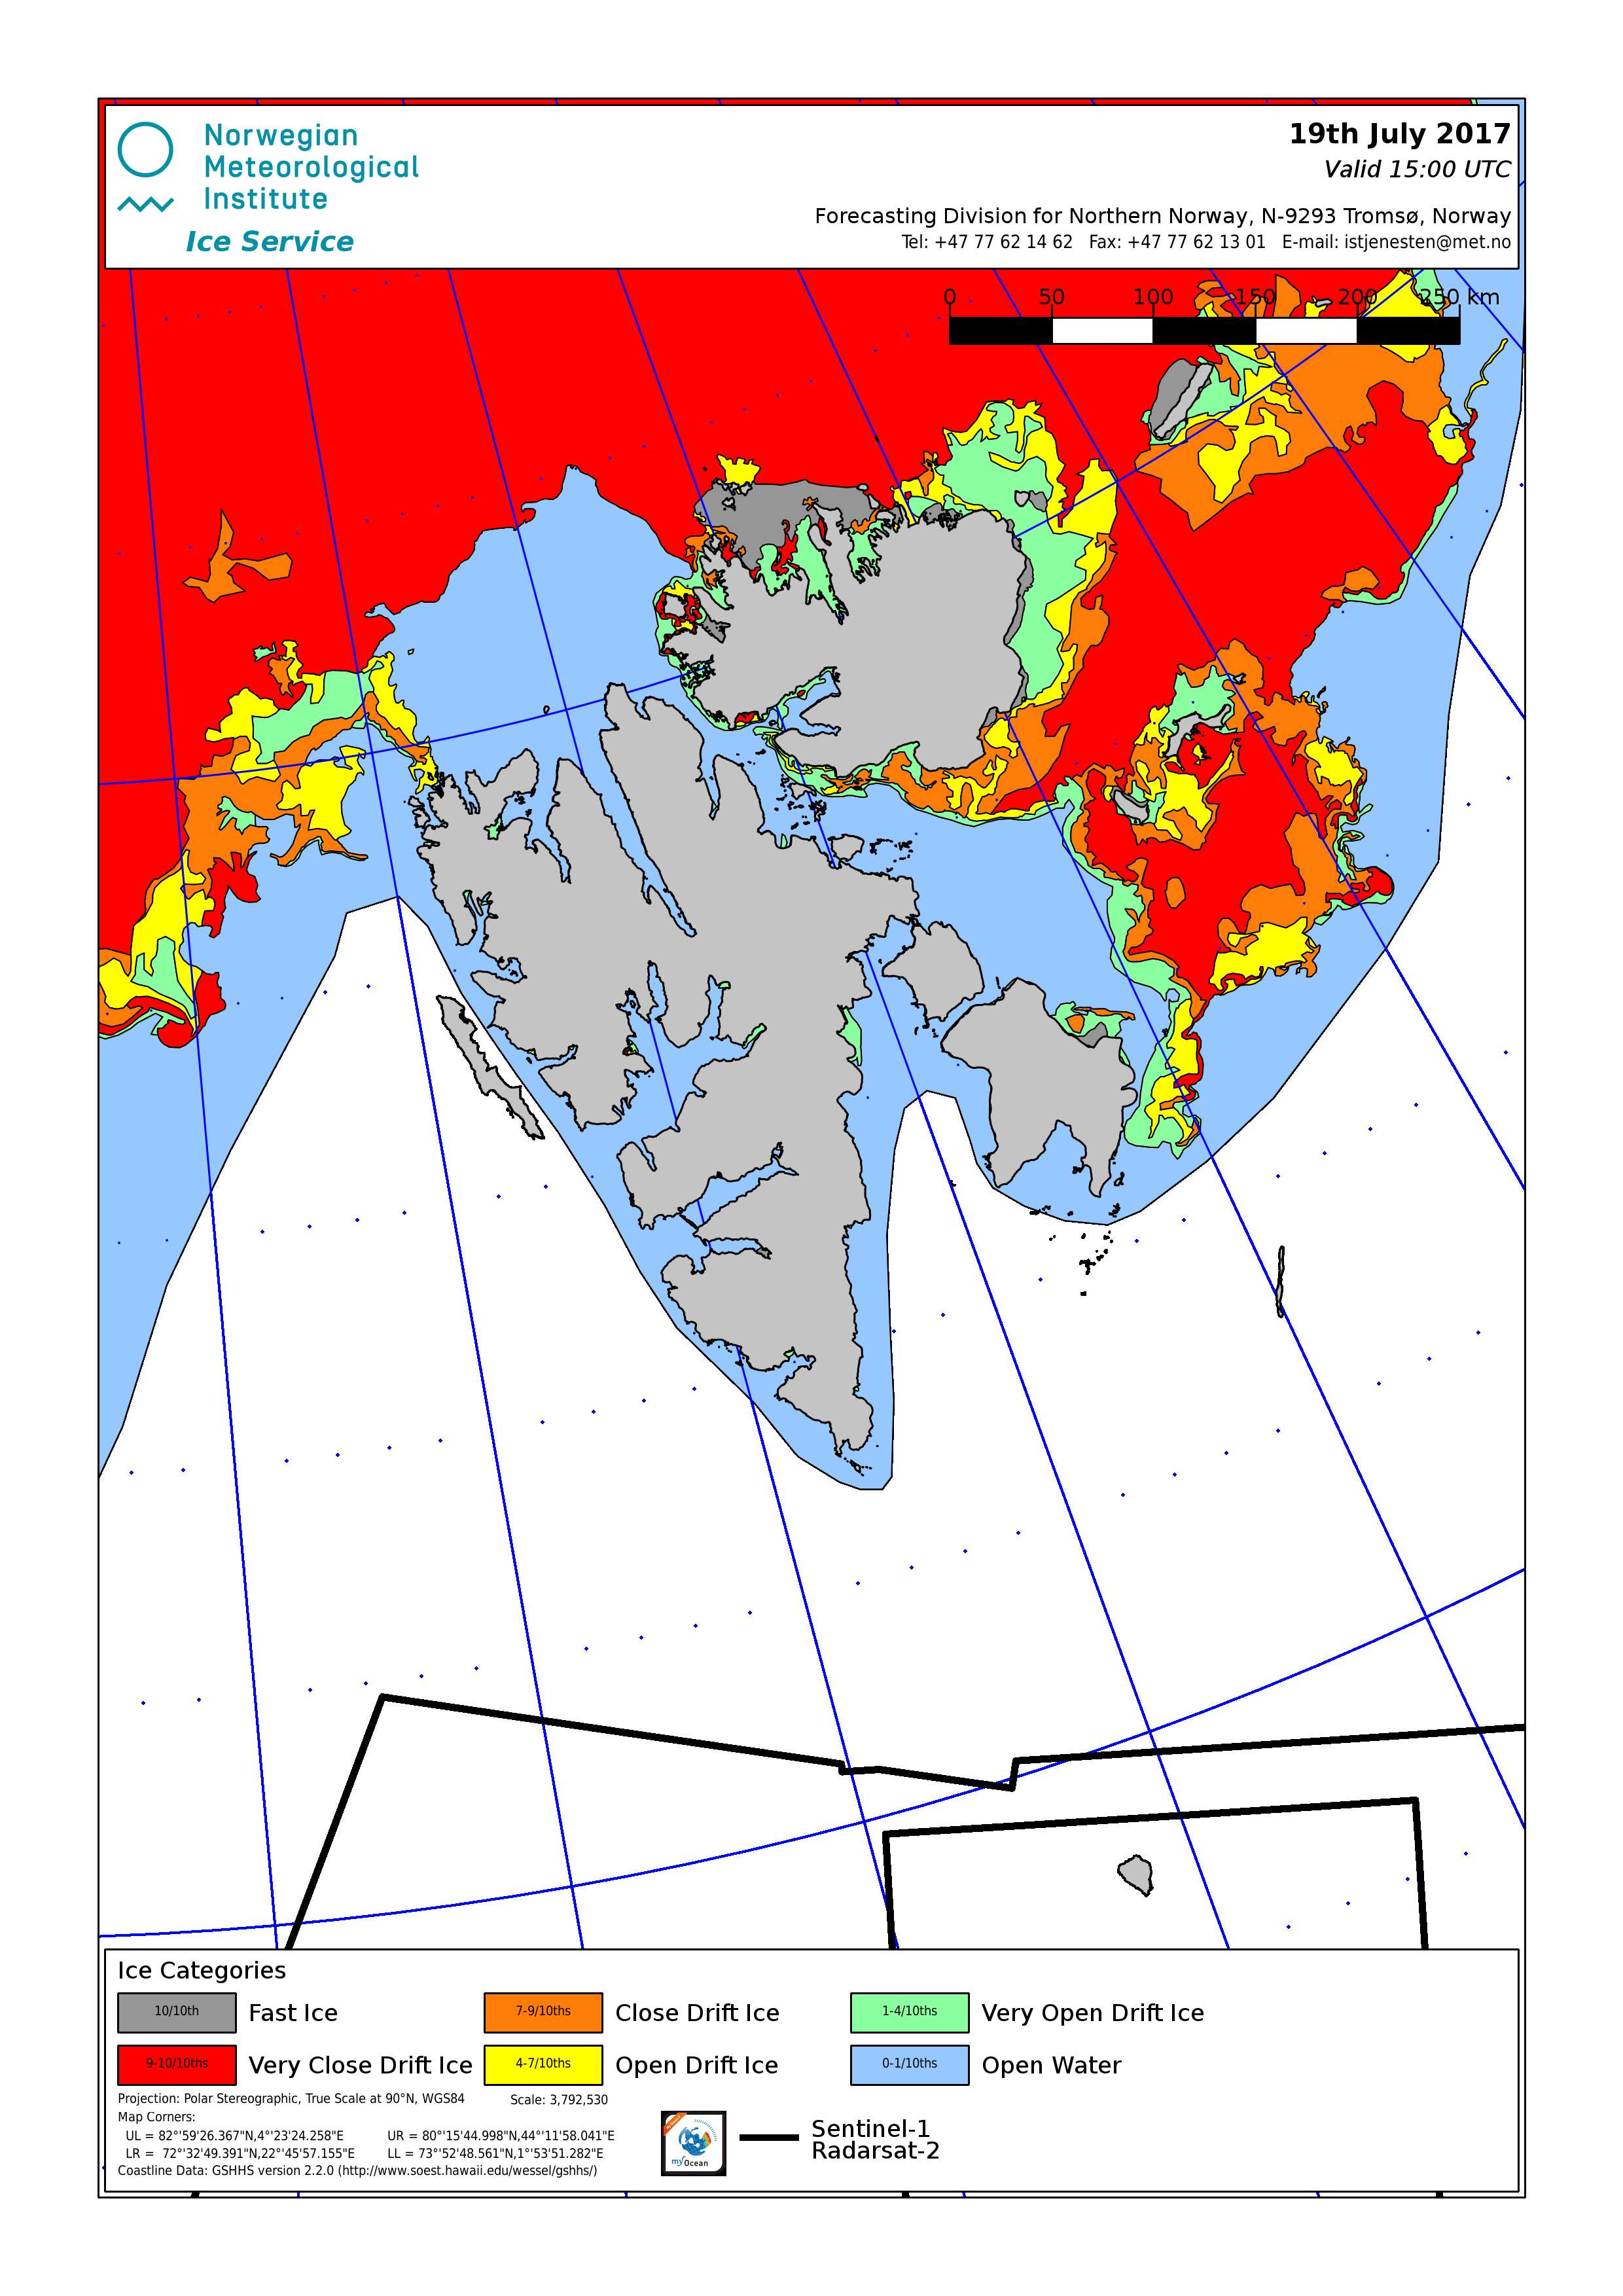 Svalbard ice chart for 19th July 2017, showing ice all around the eastern islands and nearby to the north